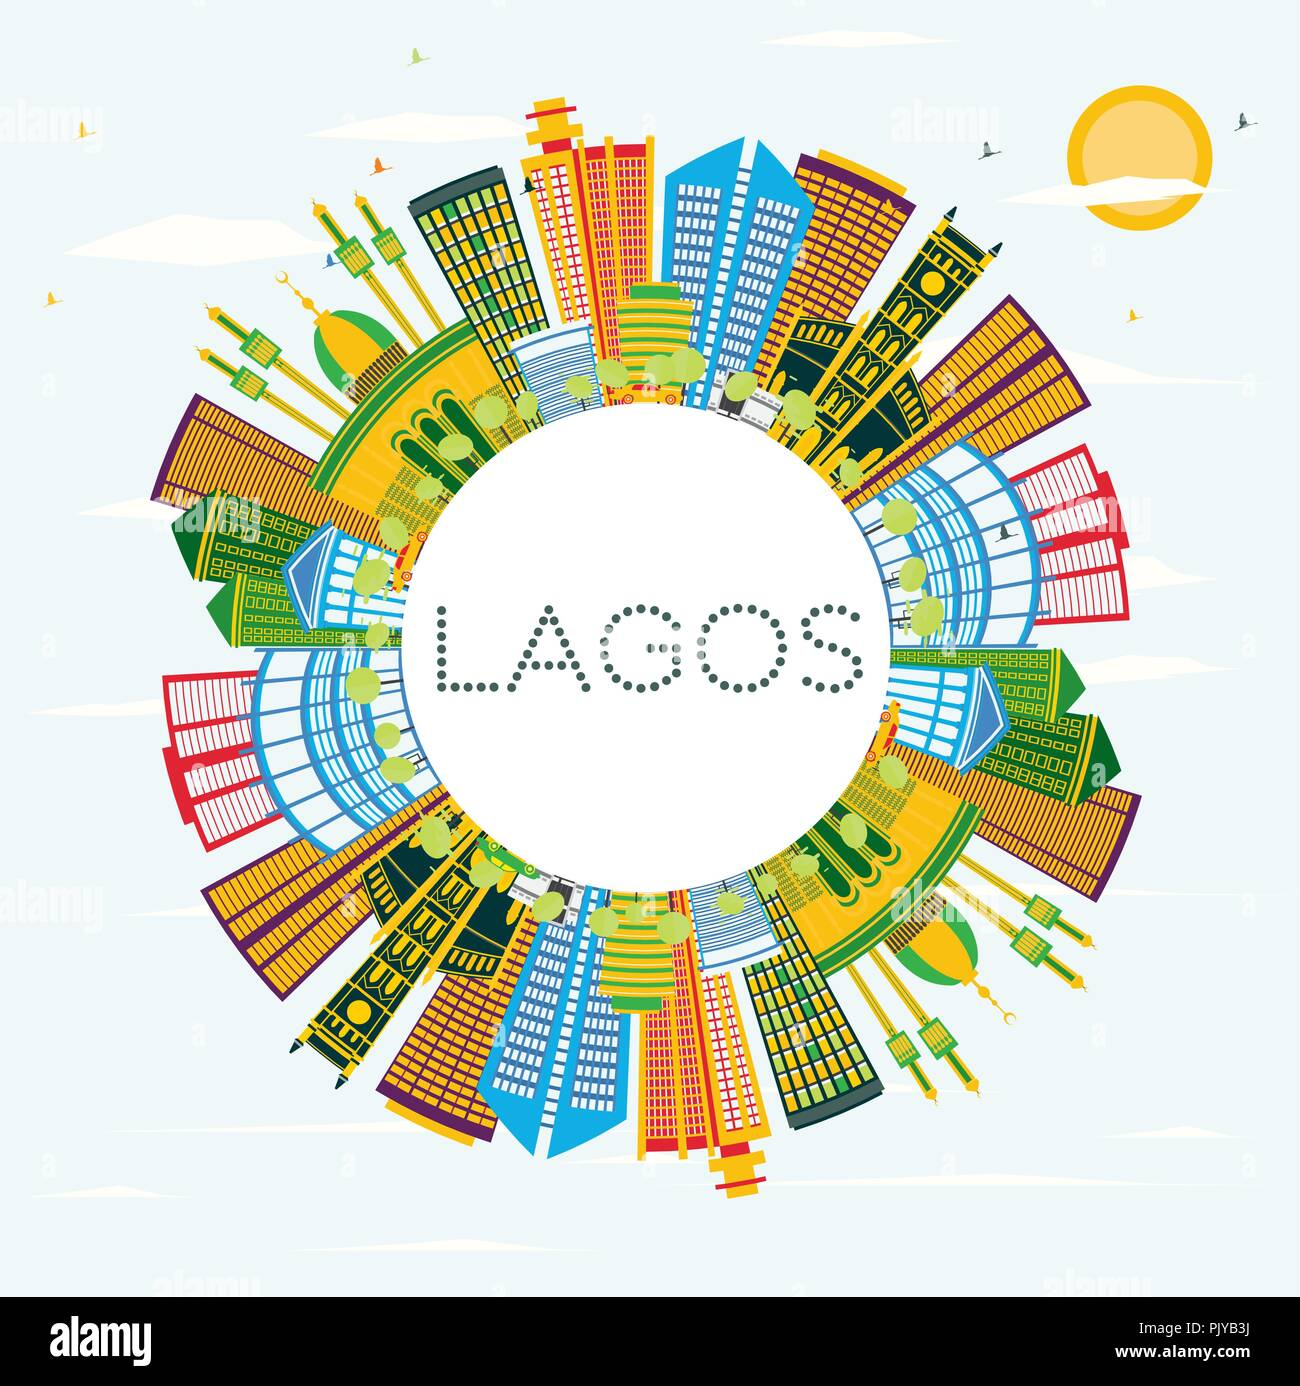 Lagos Nigeria City Skyline with Color Buildings, Blue Sky and Copy Space. Vector Illustration. - Stock Vector